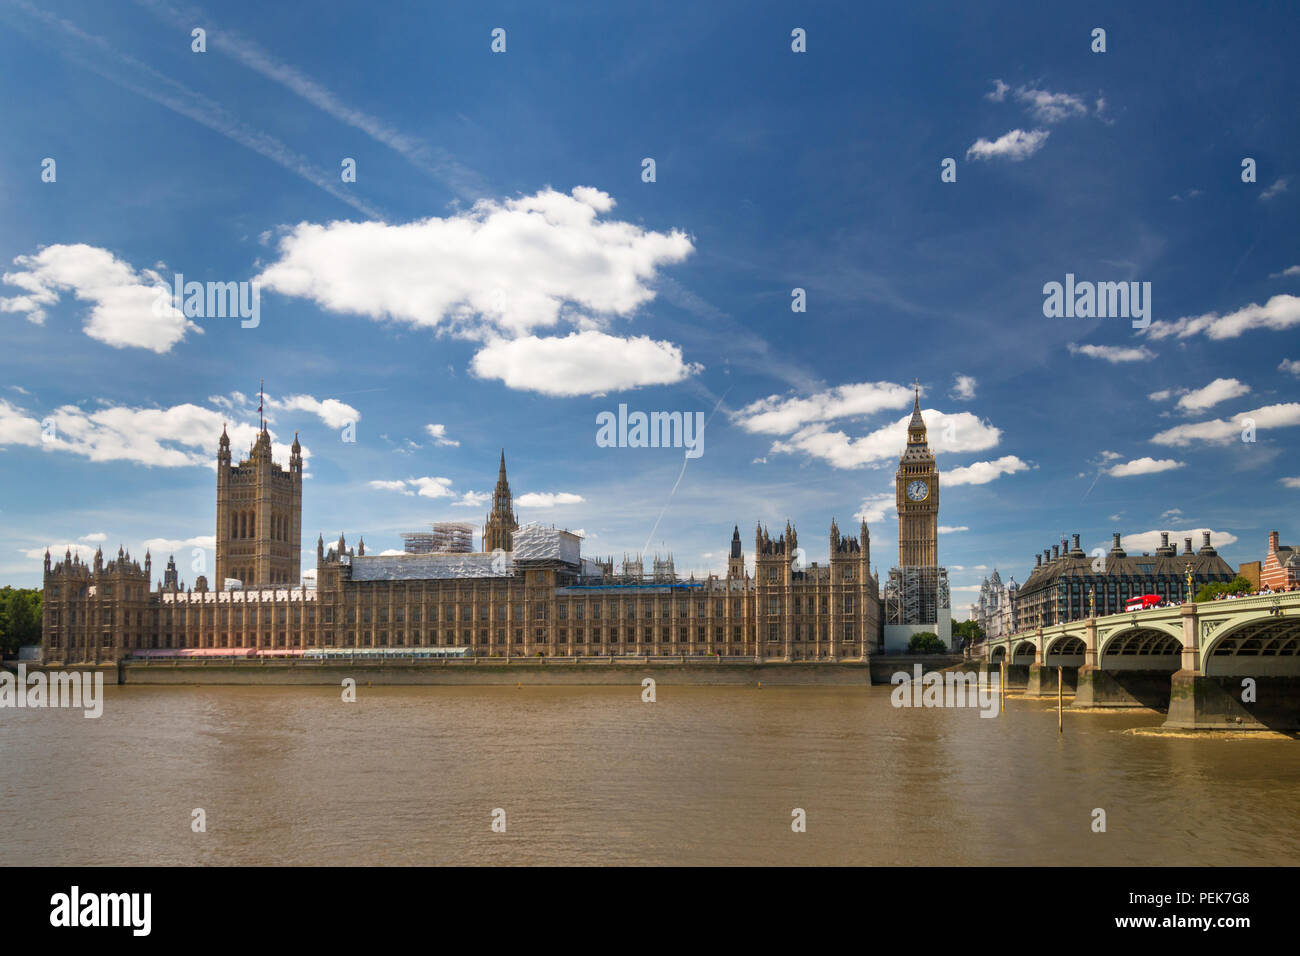 London, United Kingdom – August 13, 2017: Big Ben (Elizabeth Tower) and Palace of Westminster undergo renovation and conservation work Stock Photo